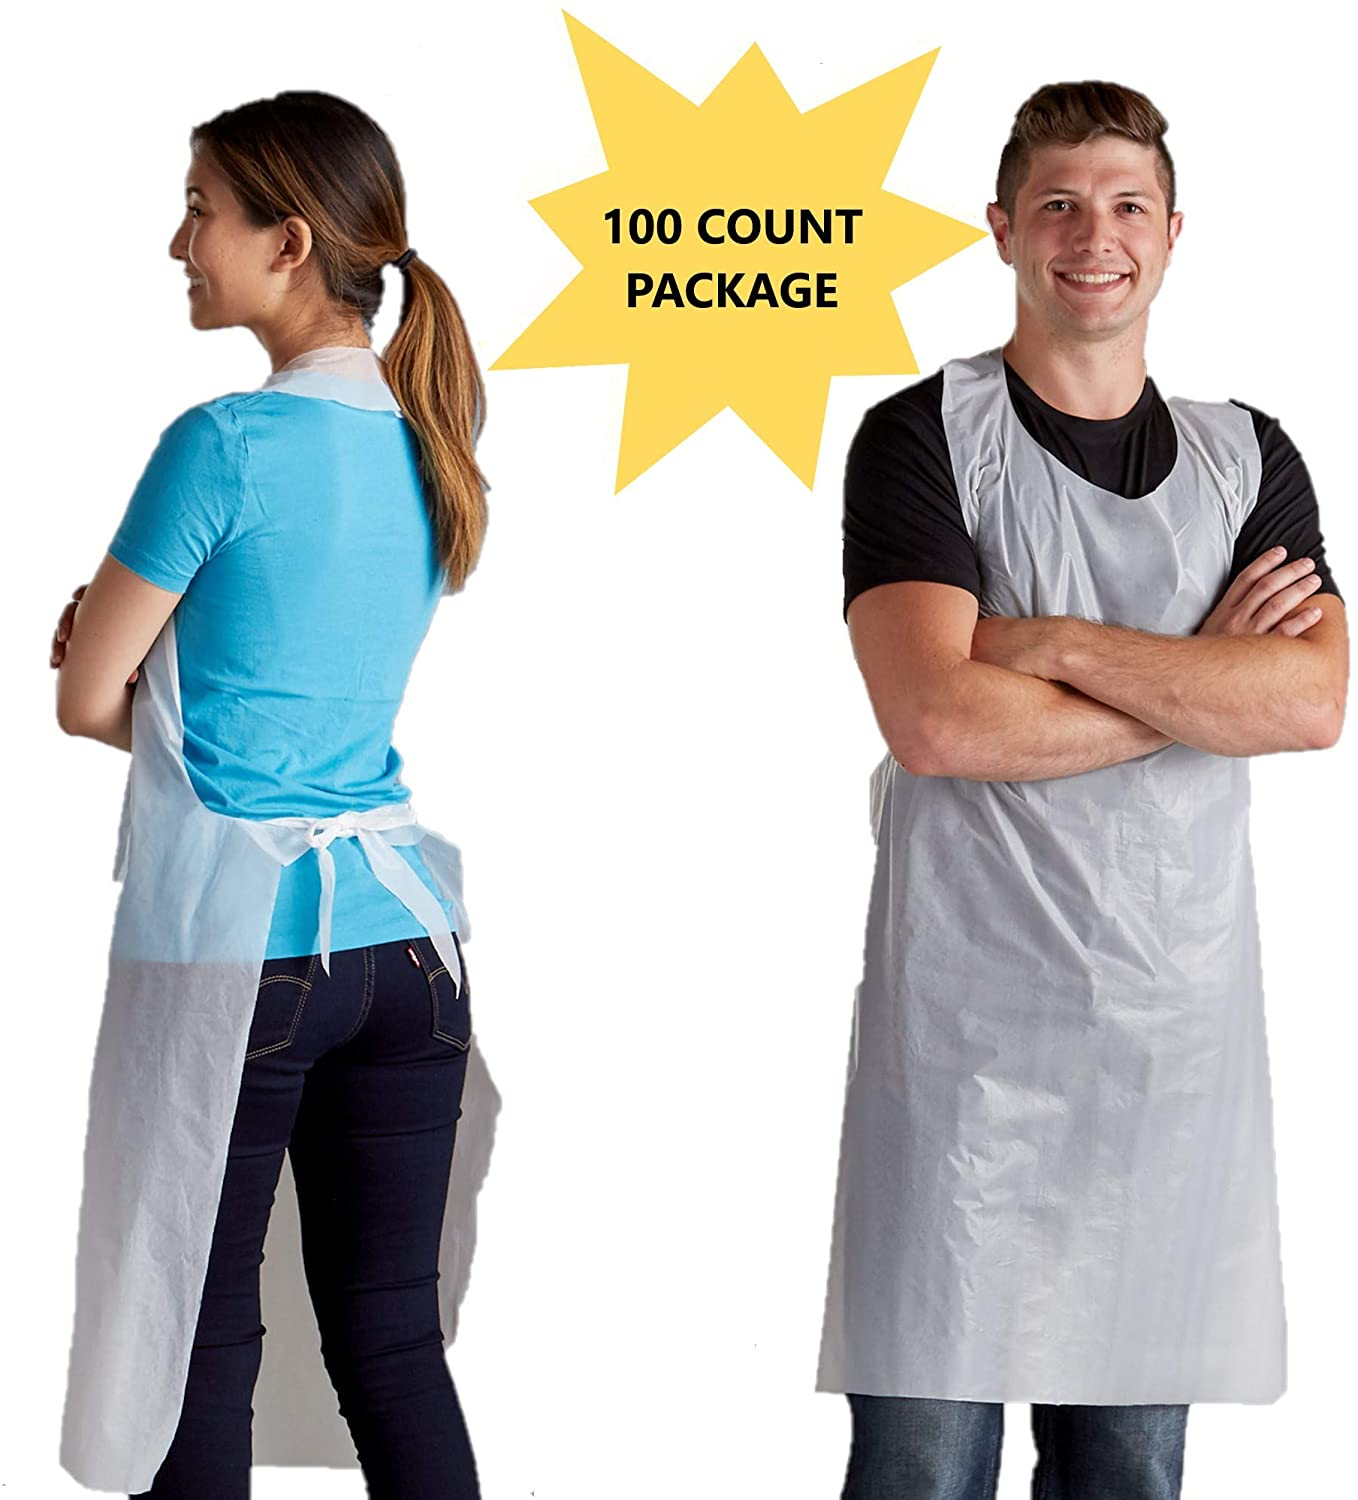 Disposable Poly Aprons 100 pack 28 X 46 inches Large White Protective Apron for Commercial or Household Use - Throw Away for Hair Salon Spa or Art Studio